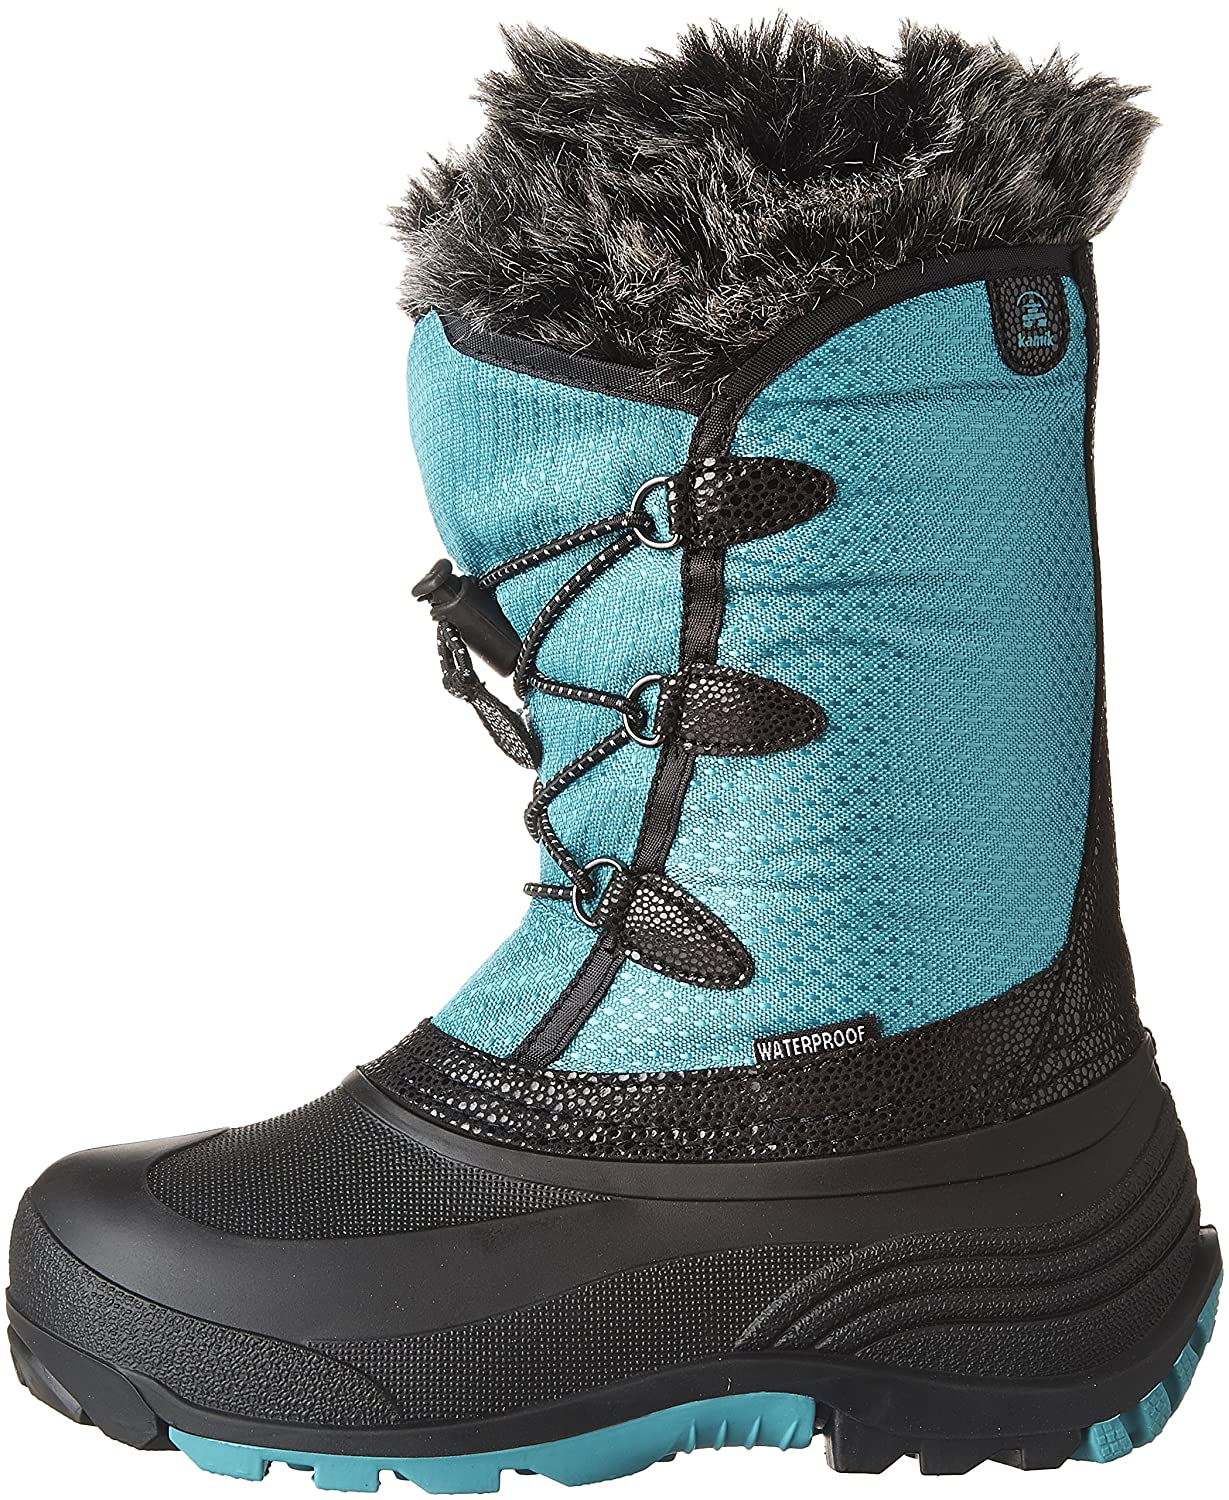 Kamik Kids' Powdery Waterproof Winter Boot, Teal, 12 M US Little Kid NK8746